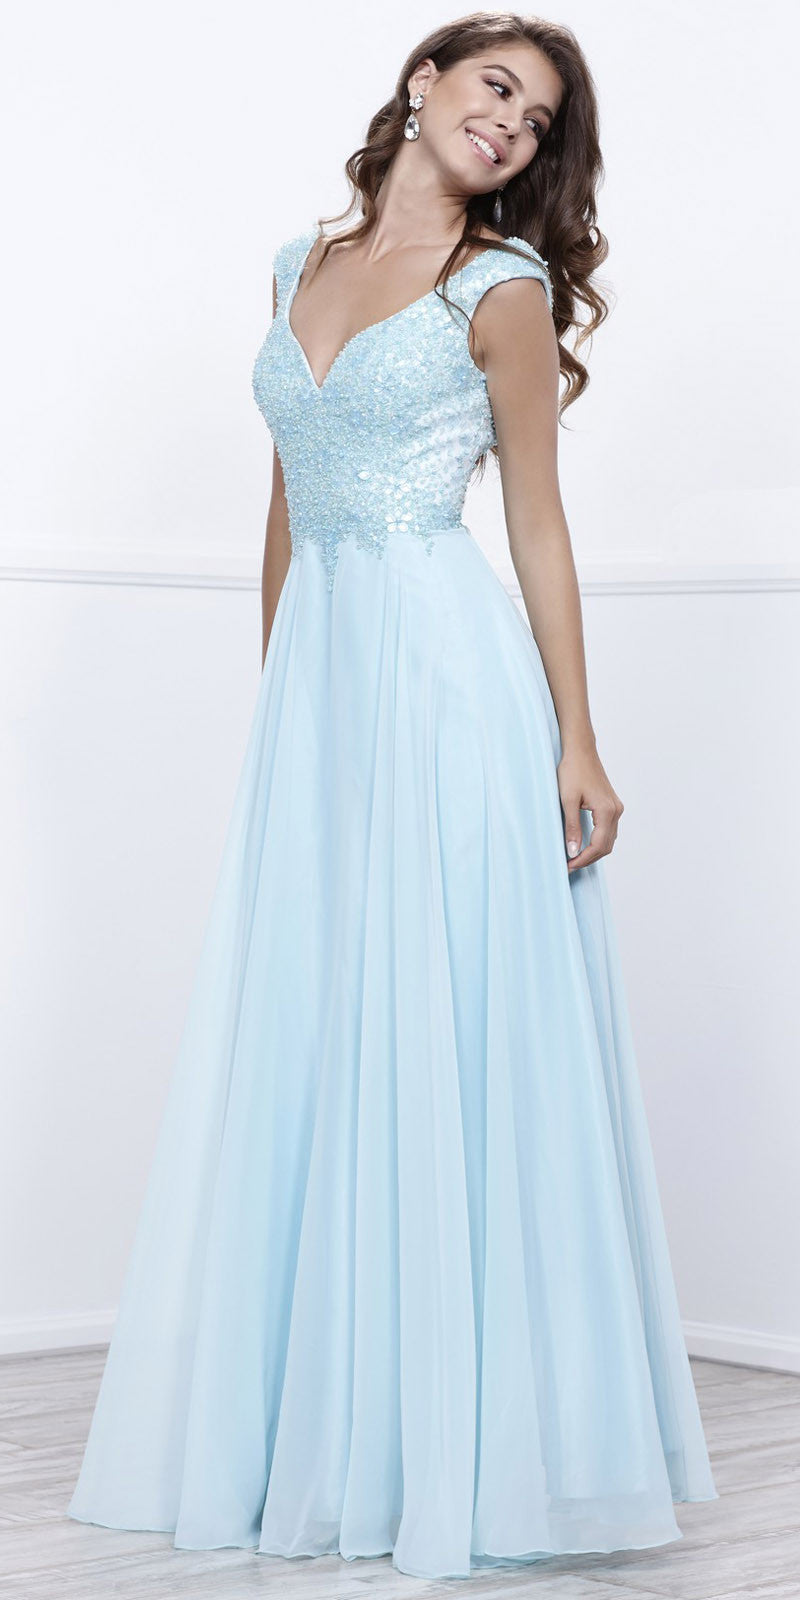 Encrusted V-Neck Bodice Low Back A-line Long Formal Dress Ice Blue